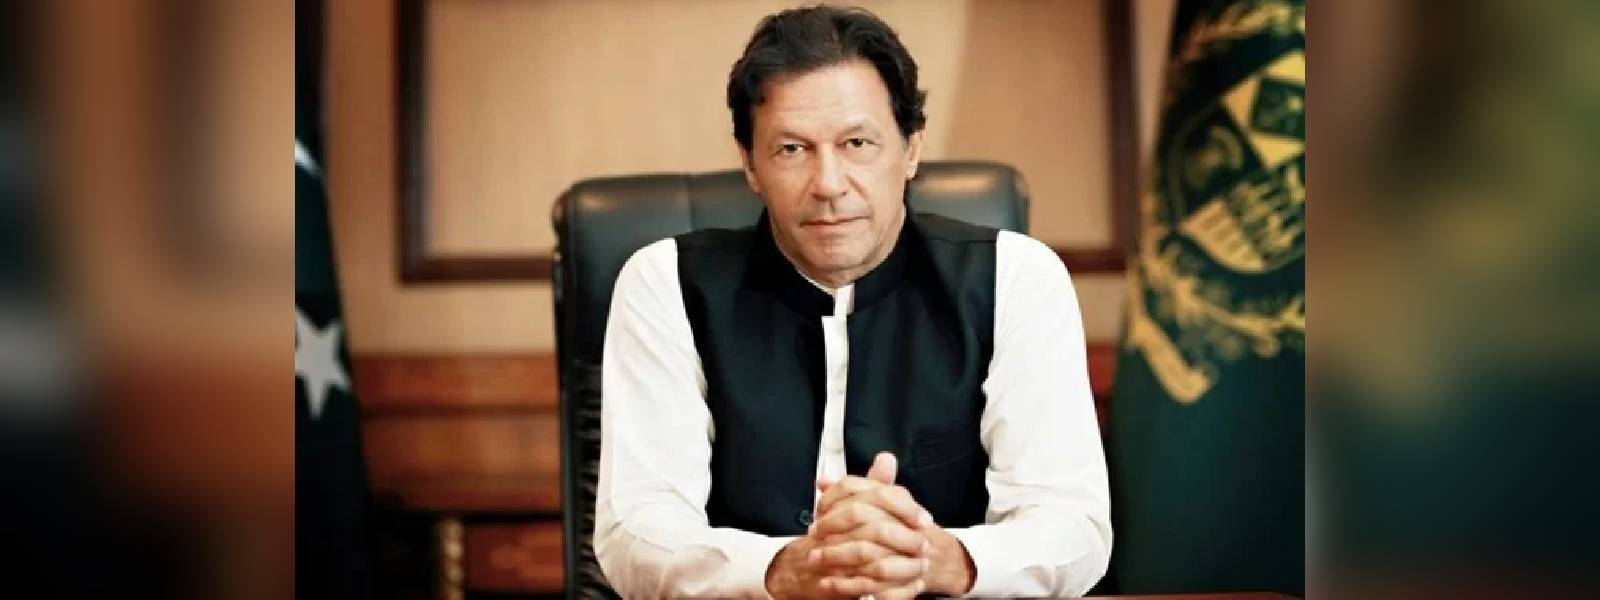 Pakistan PM announces intention to strengthen SL connectivity to Central Asia through China-Pak corridor